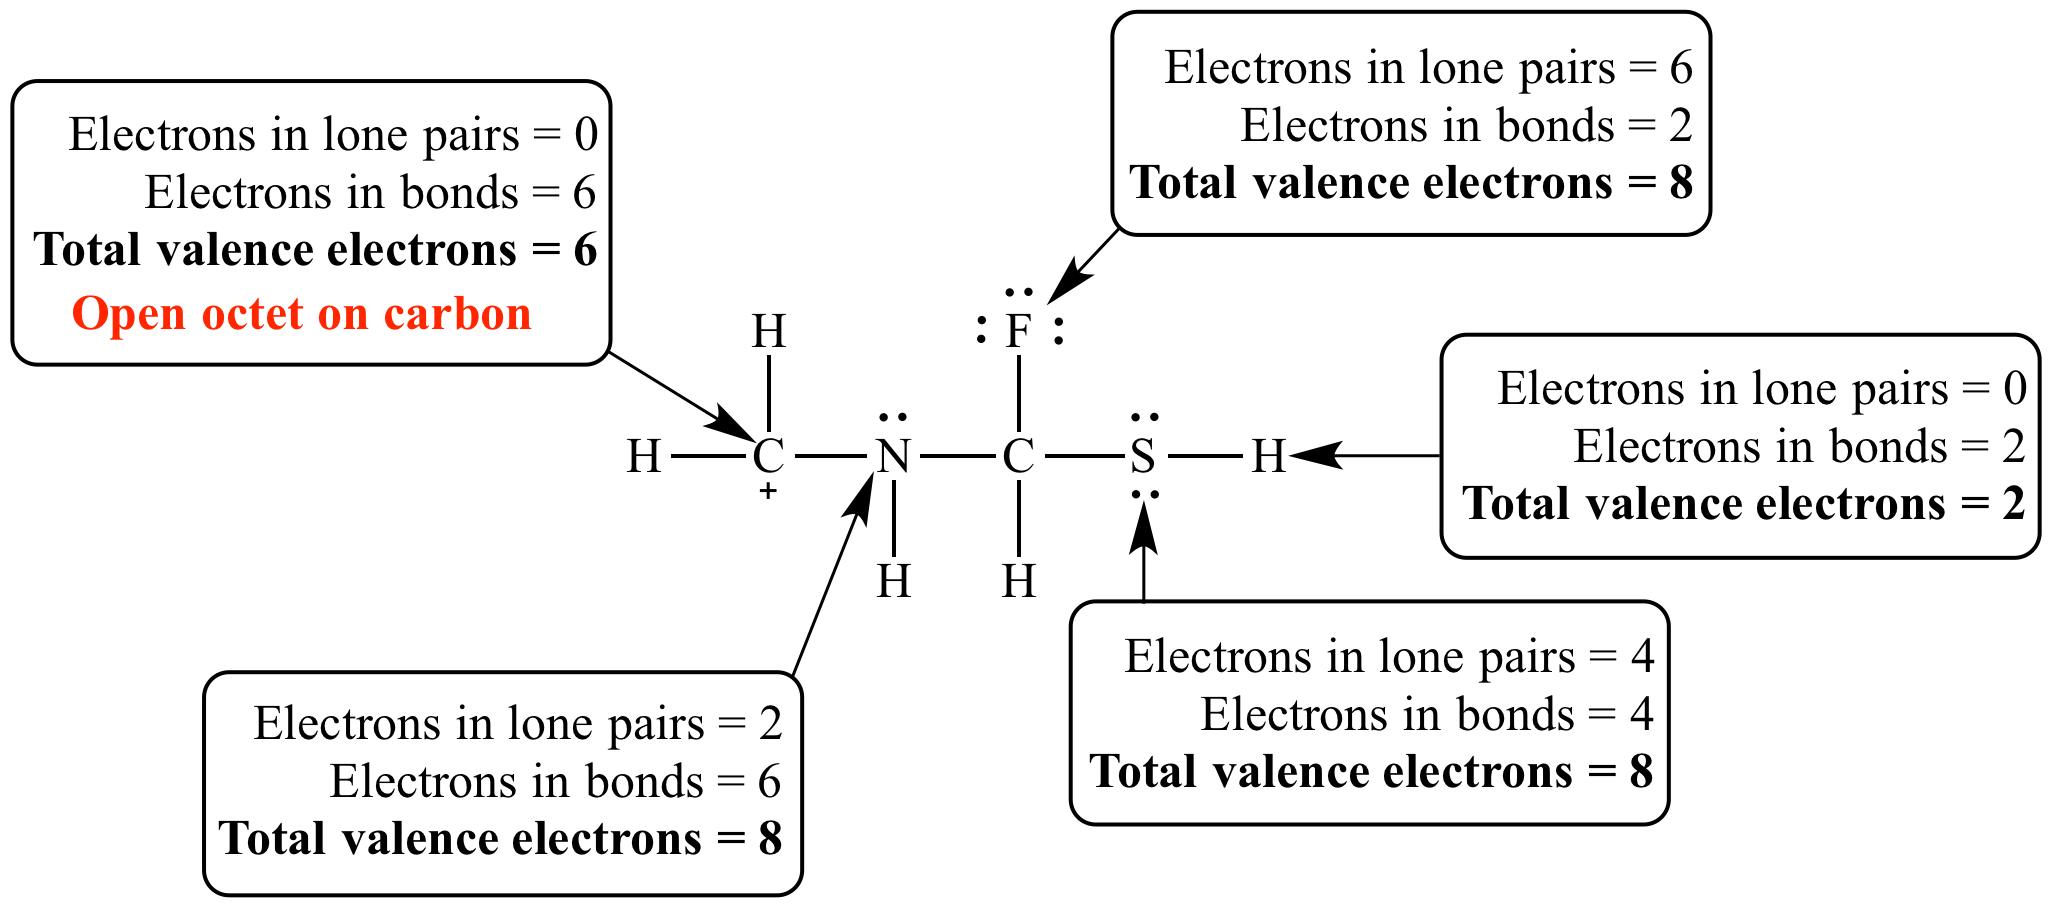 this carbocation has open valence electron counts on carbon and sulfur   this is an open octet for carbon but not for sulfur, because carbon prefers  eight